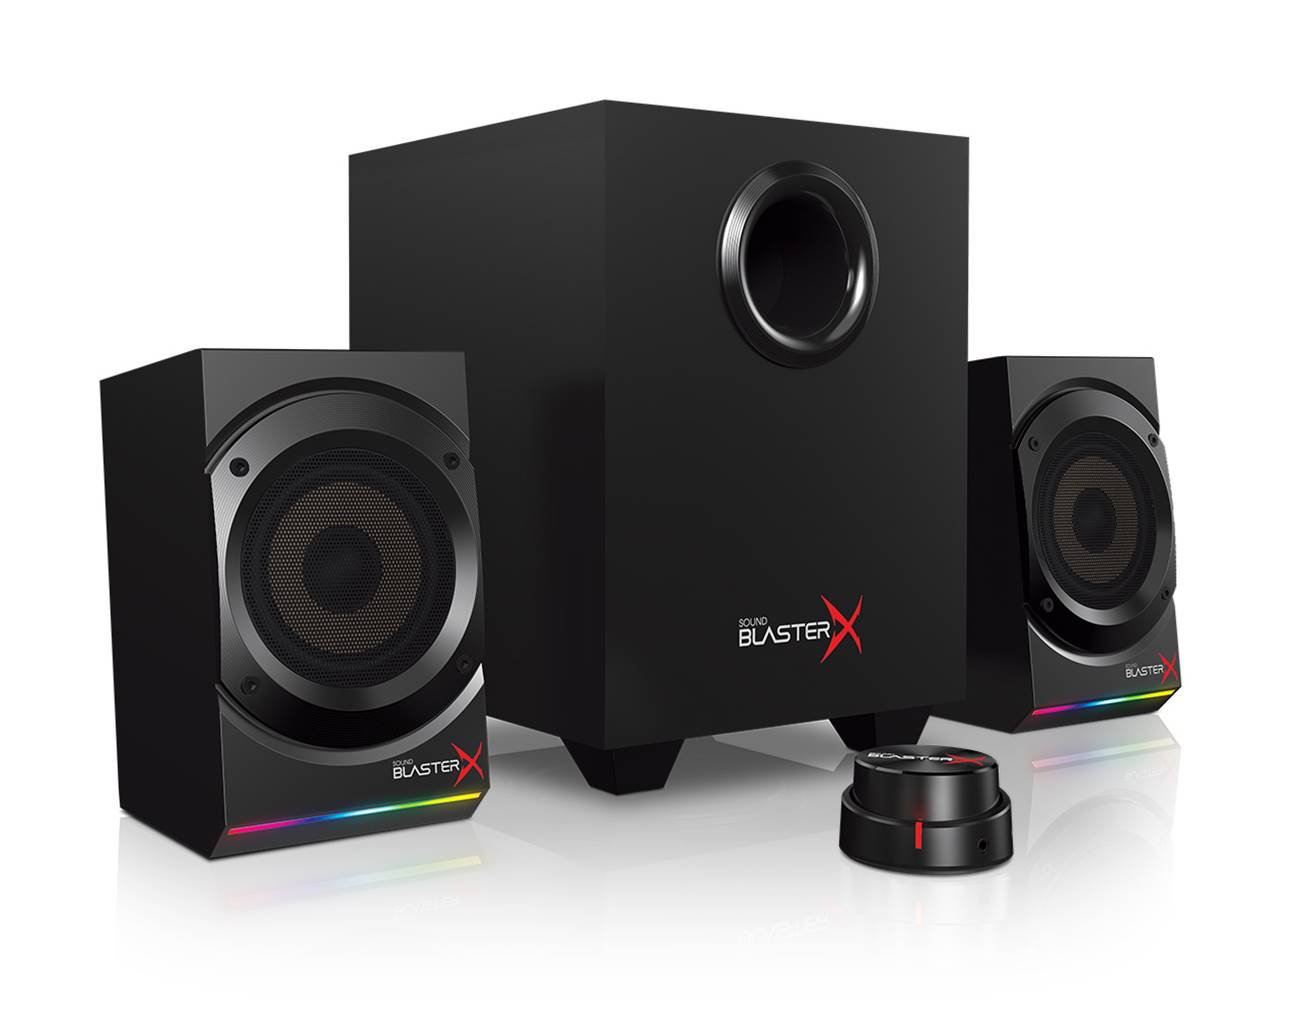 Sound BlasterX Kratos Gaming Speakers